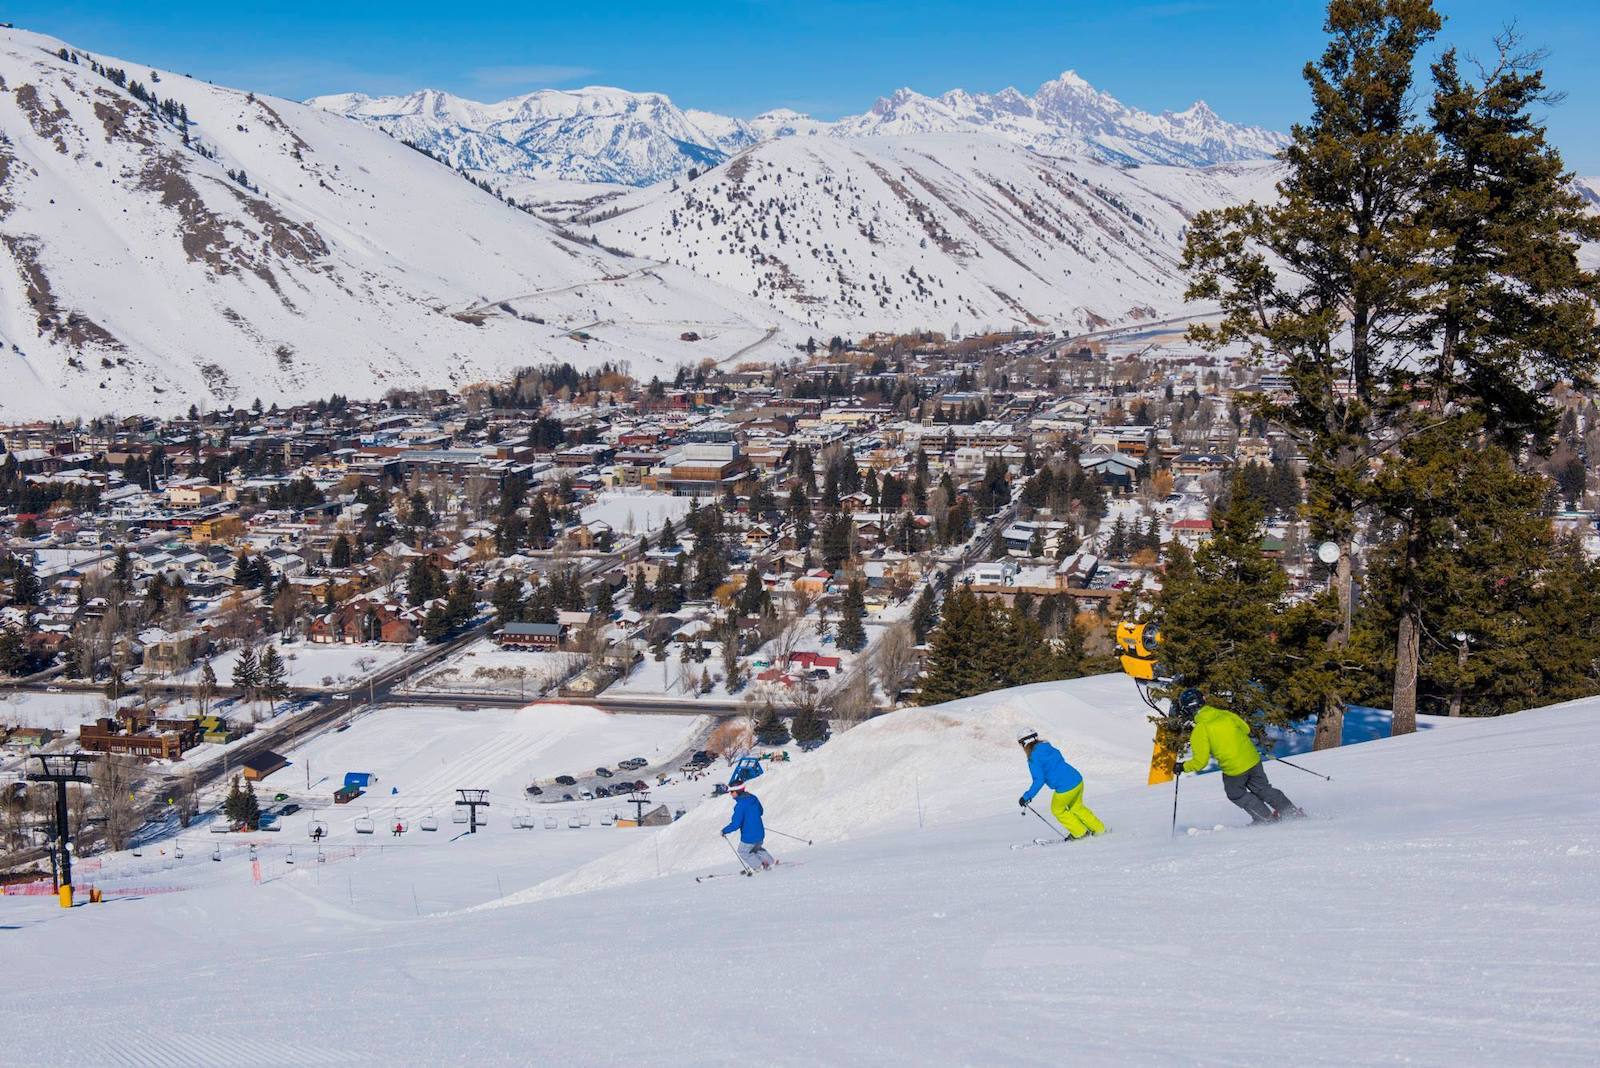 Image of skiers going down the slopes overlooking the city of Jackson at Snow King Mountain Resort in Wyoming